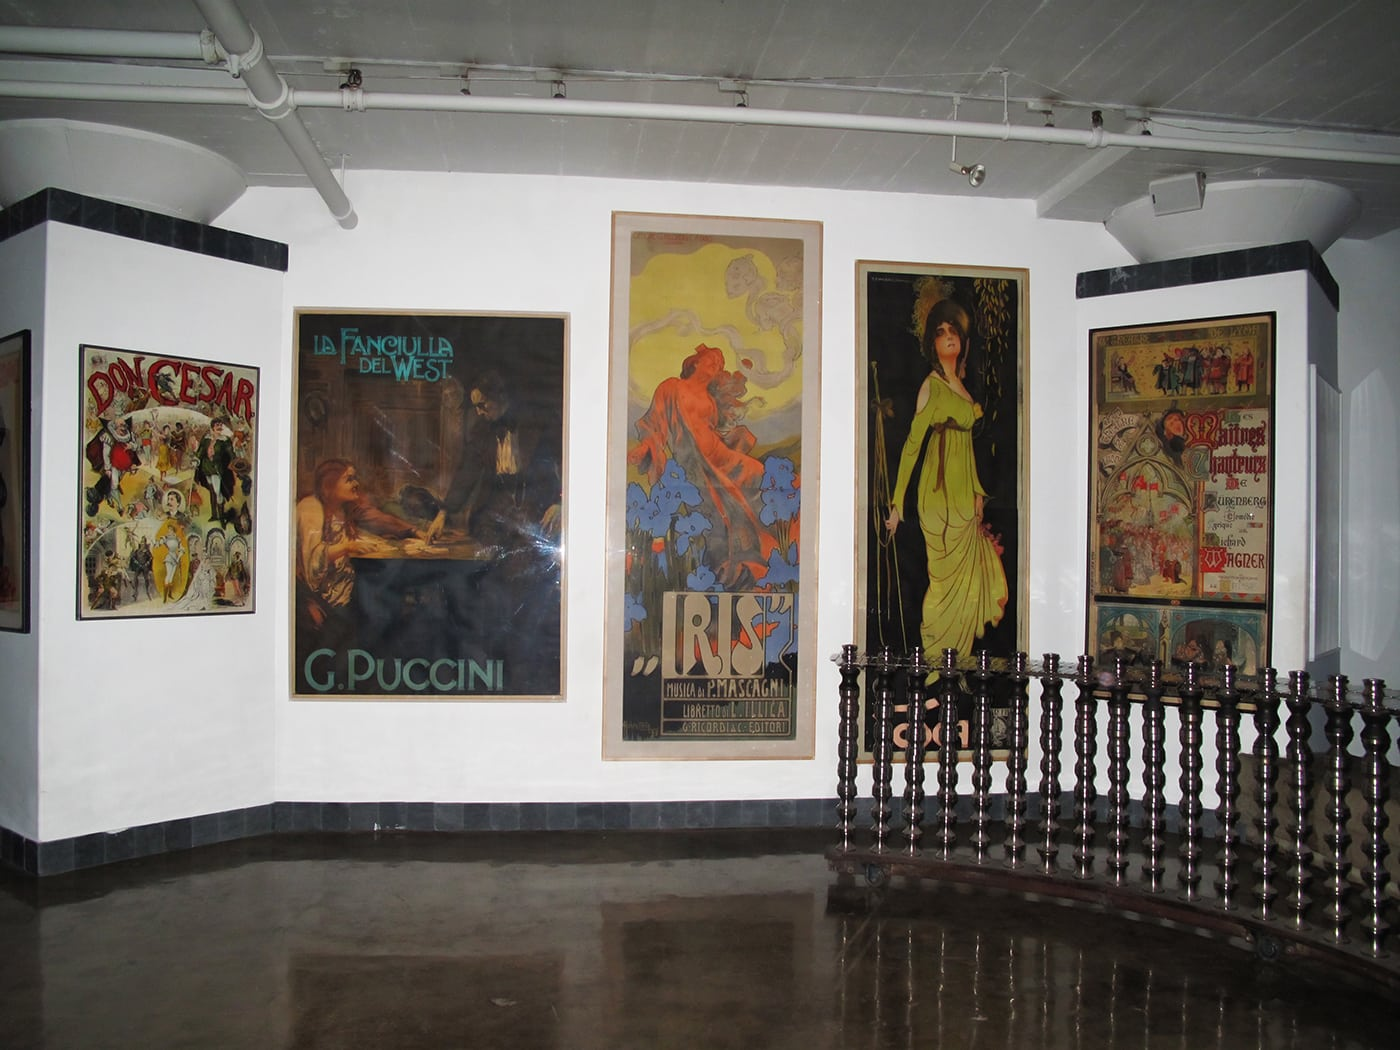 Vintage Opera Posters at The City Museum in St. Louis, Missouri.